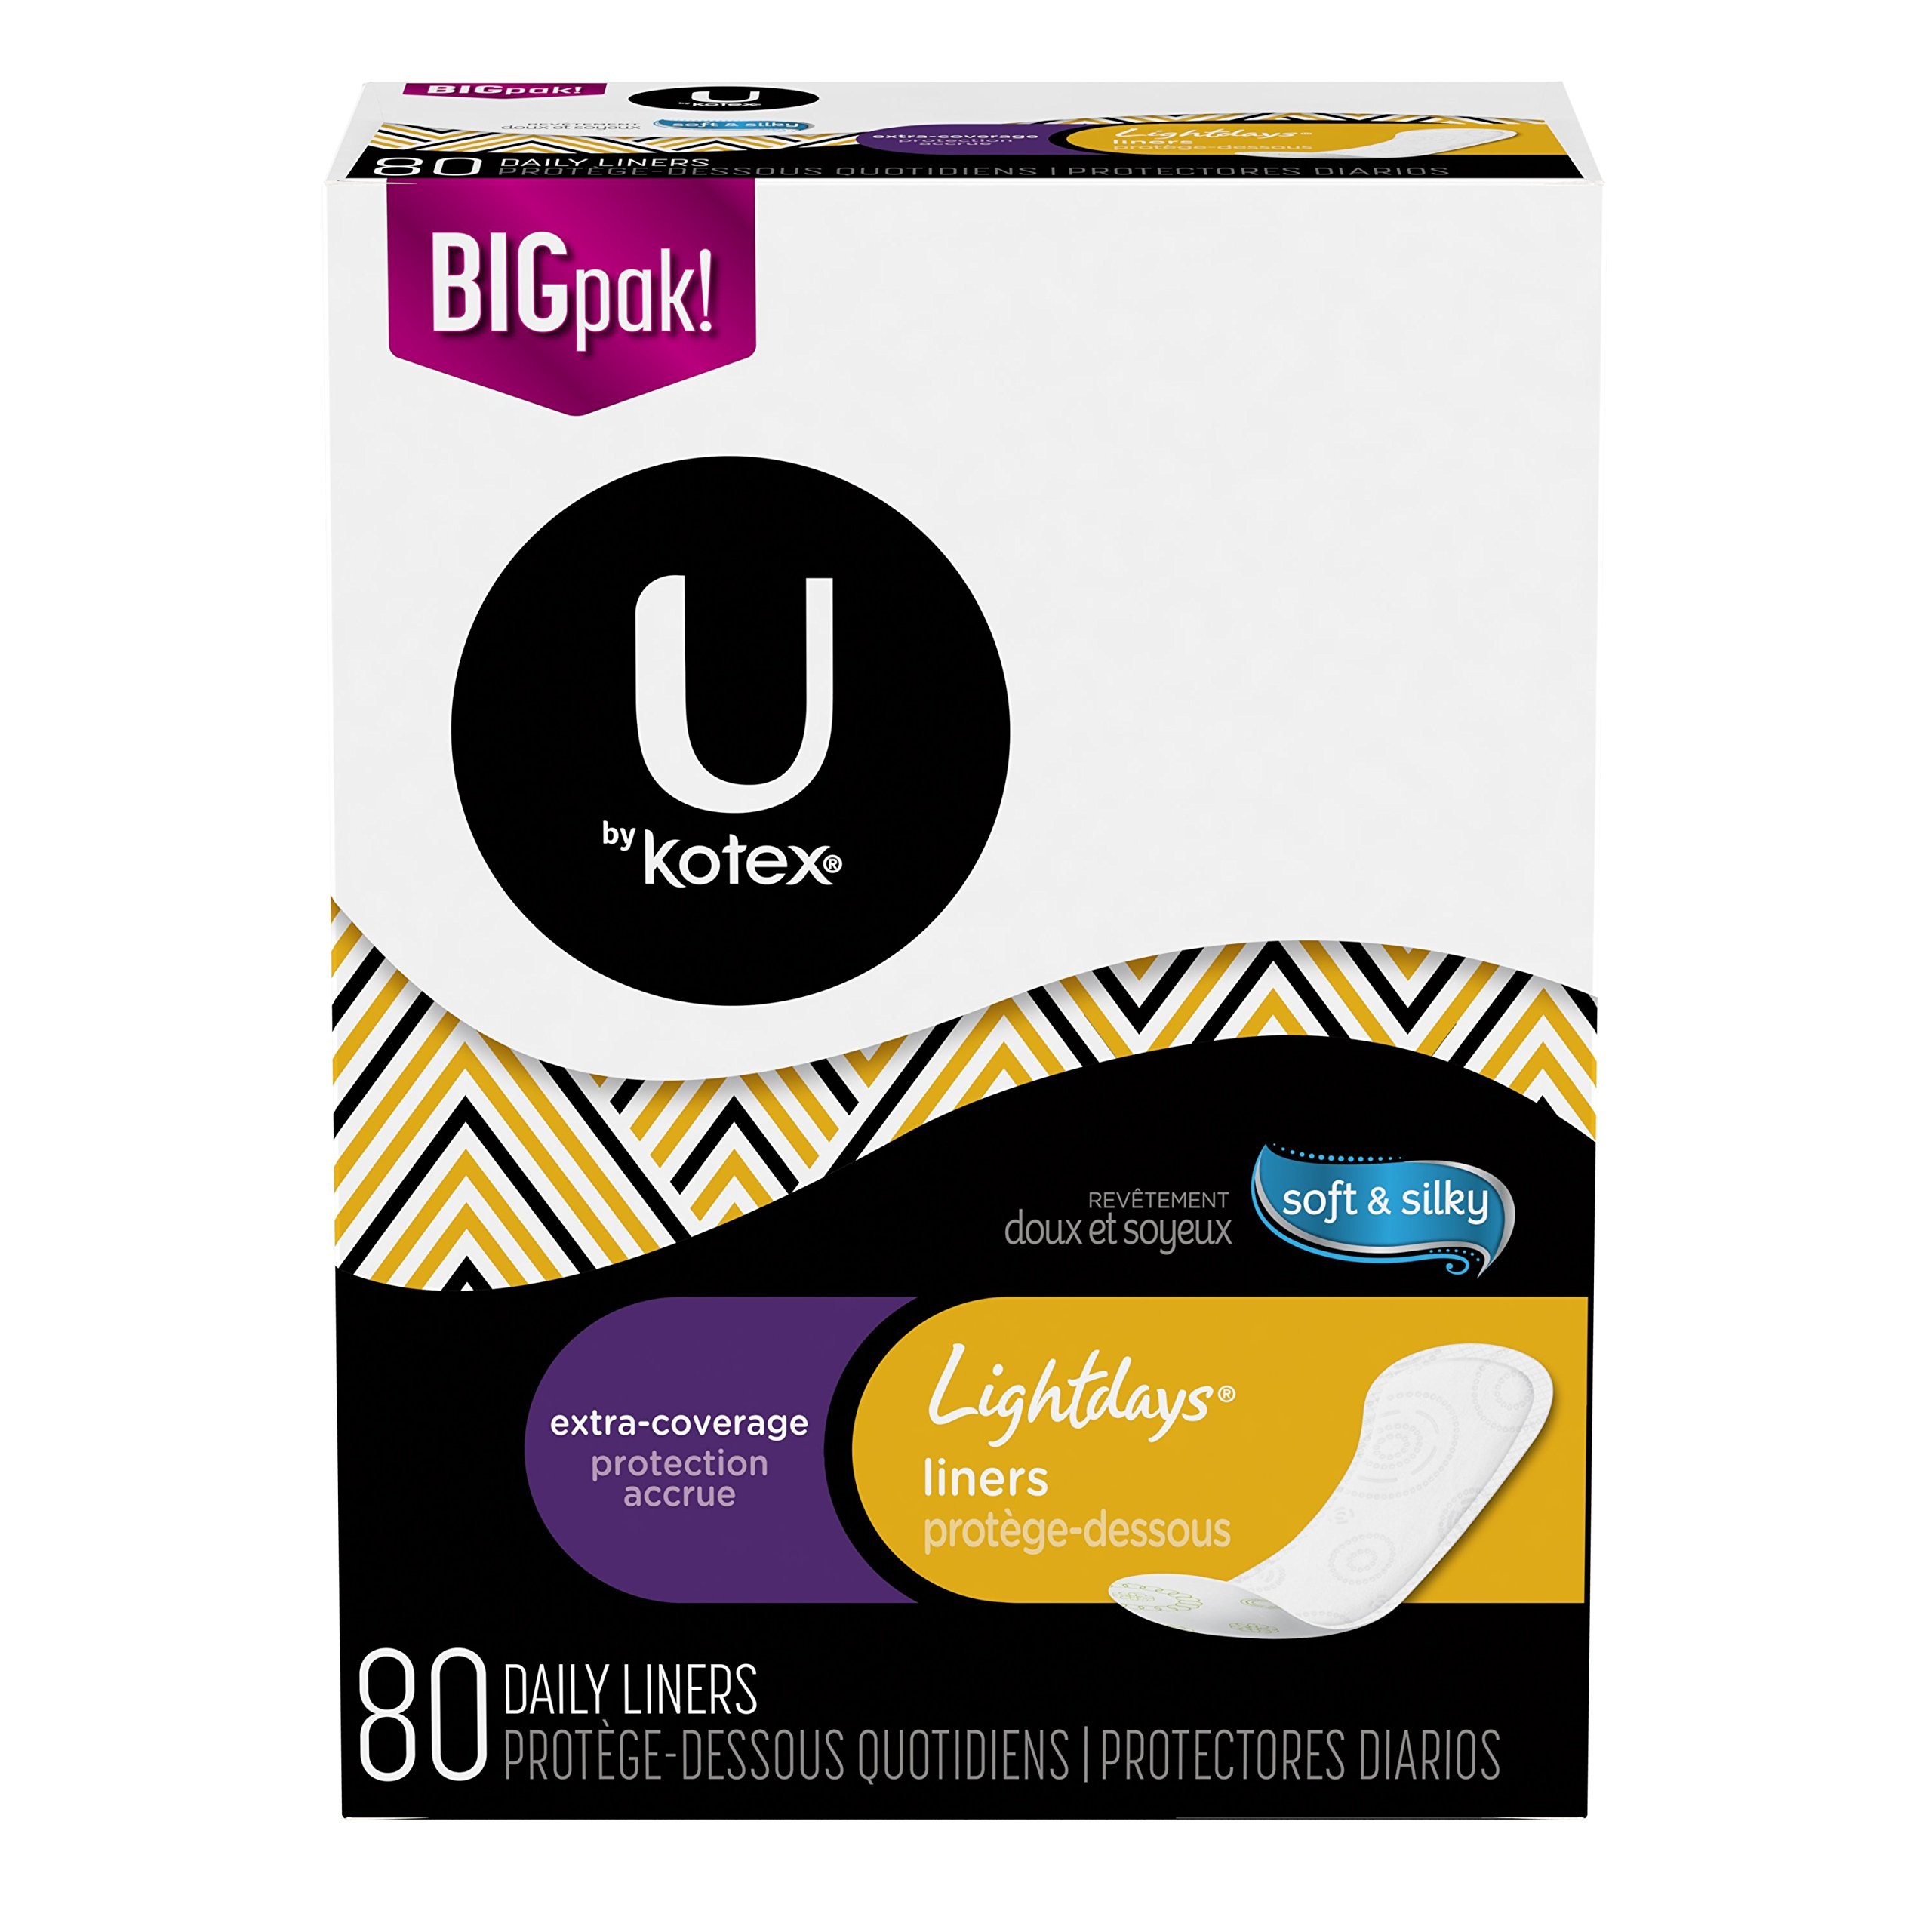 U by Kotex Lightdays Liners, Extra Coverage, Unscented, 80 Count (Pack of 6) by U by Kotex